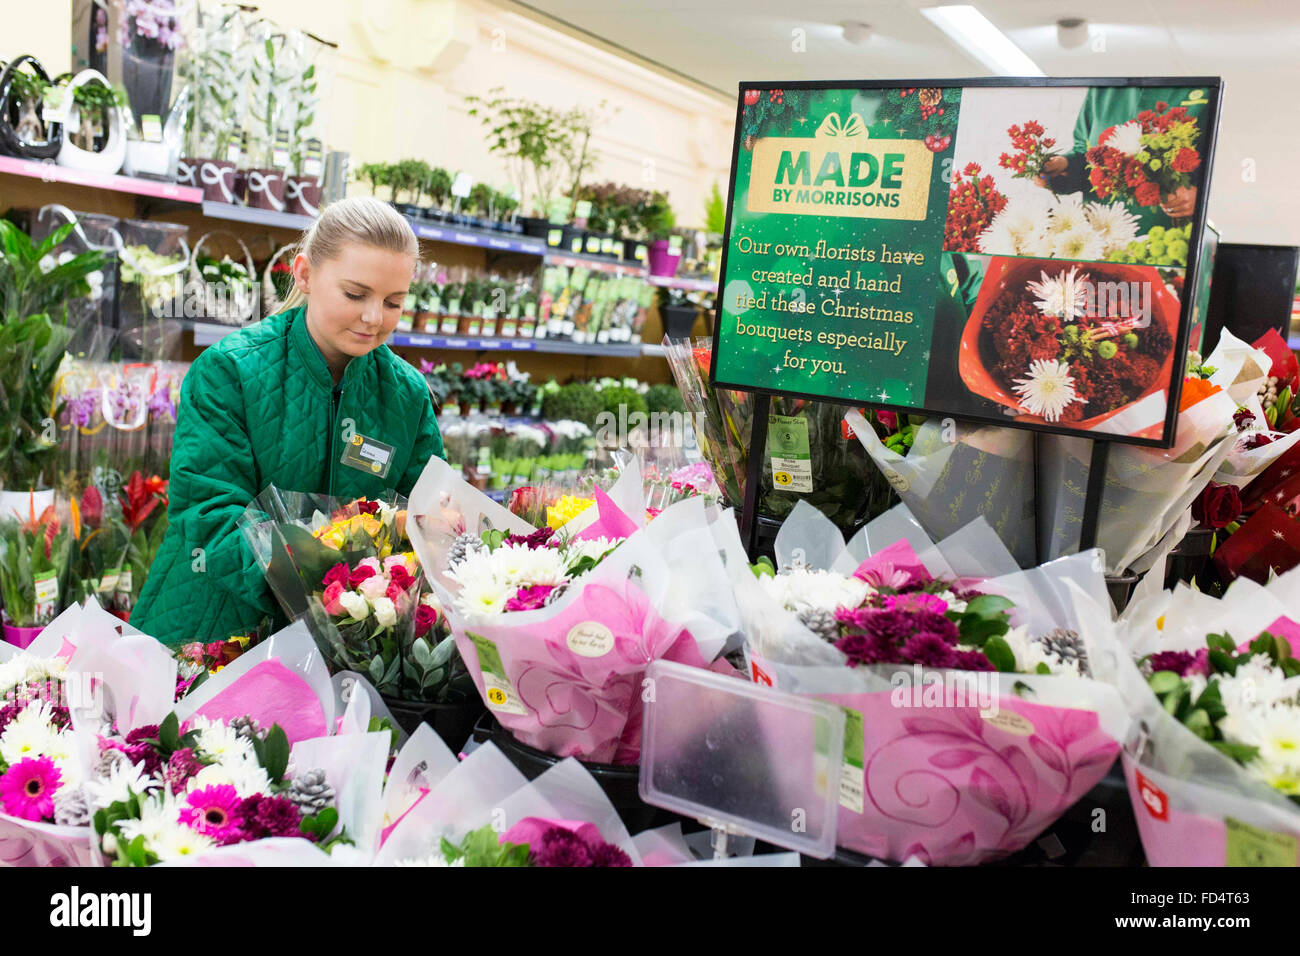 Morrisons supermarket. A woman working in the florist section - Stock Image